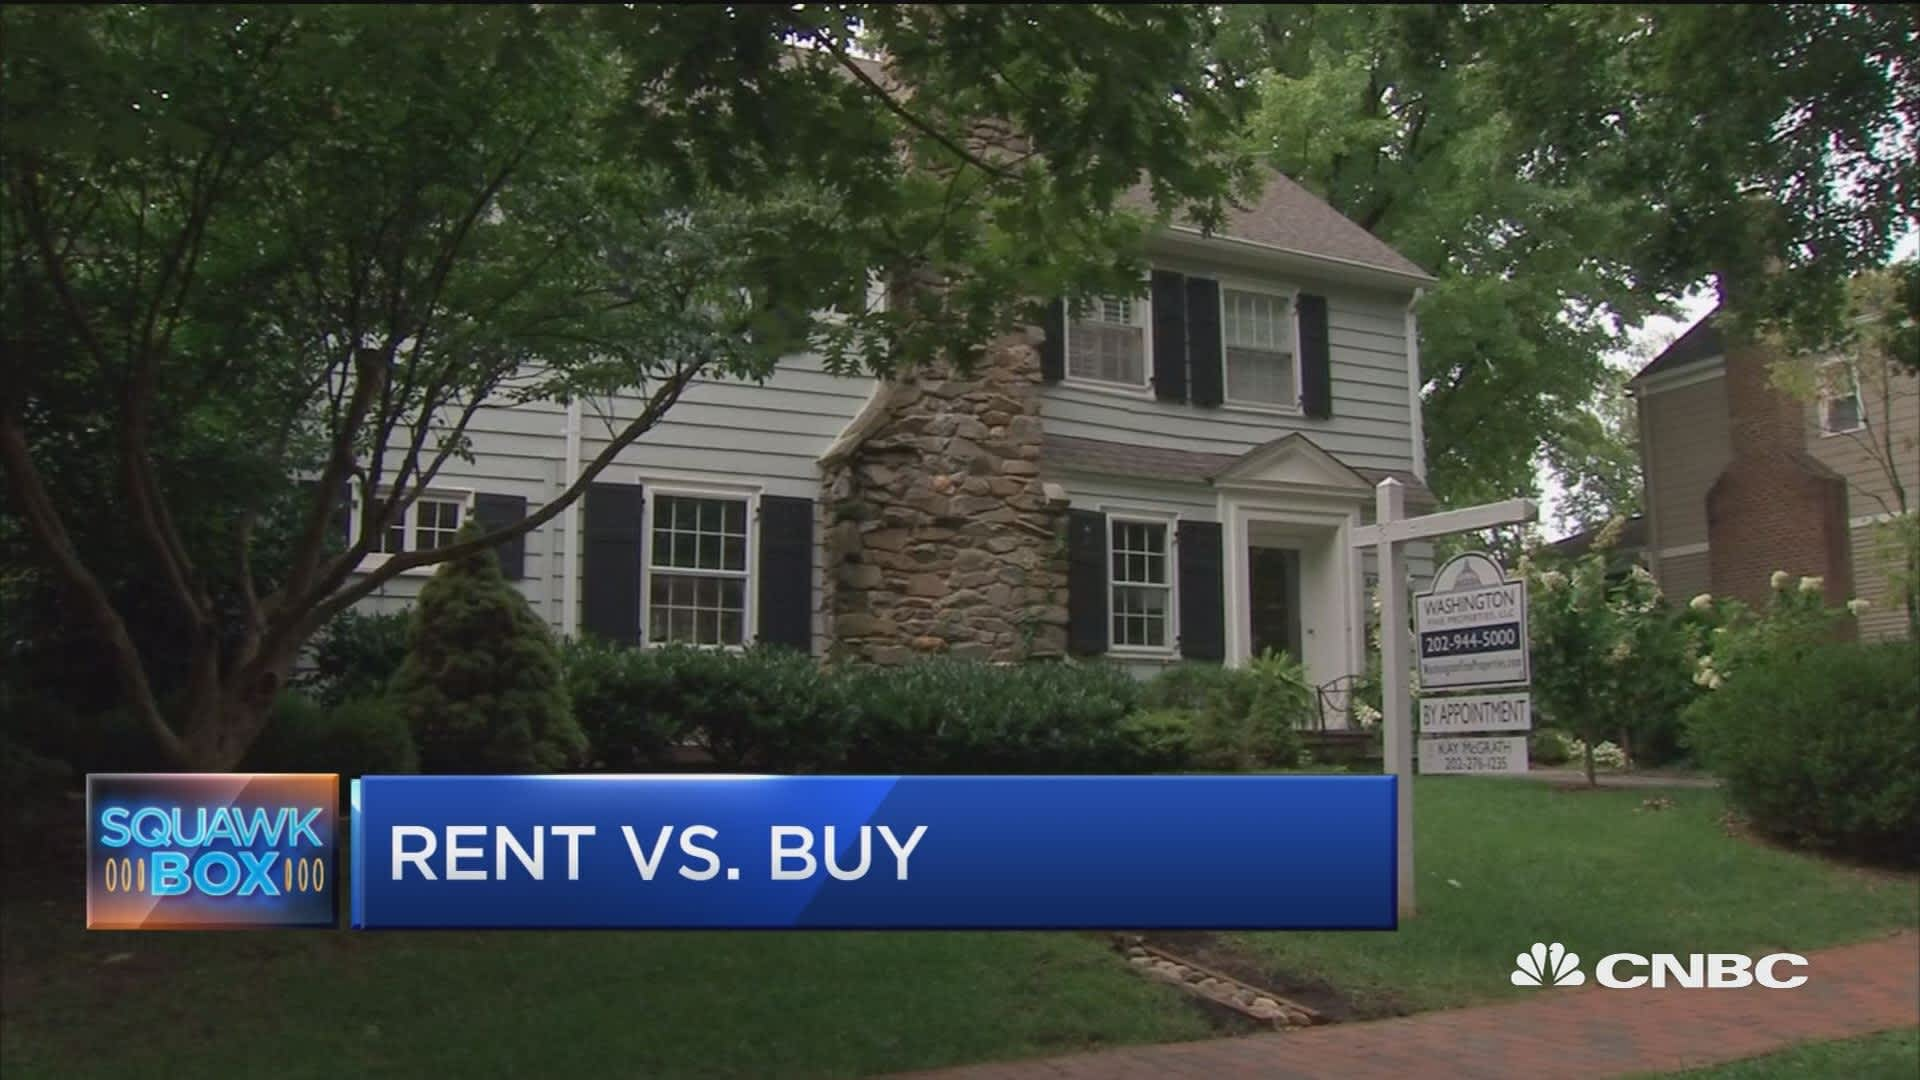 Buying a home now cheaper than renting in only 35% of US counties